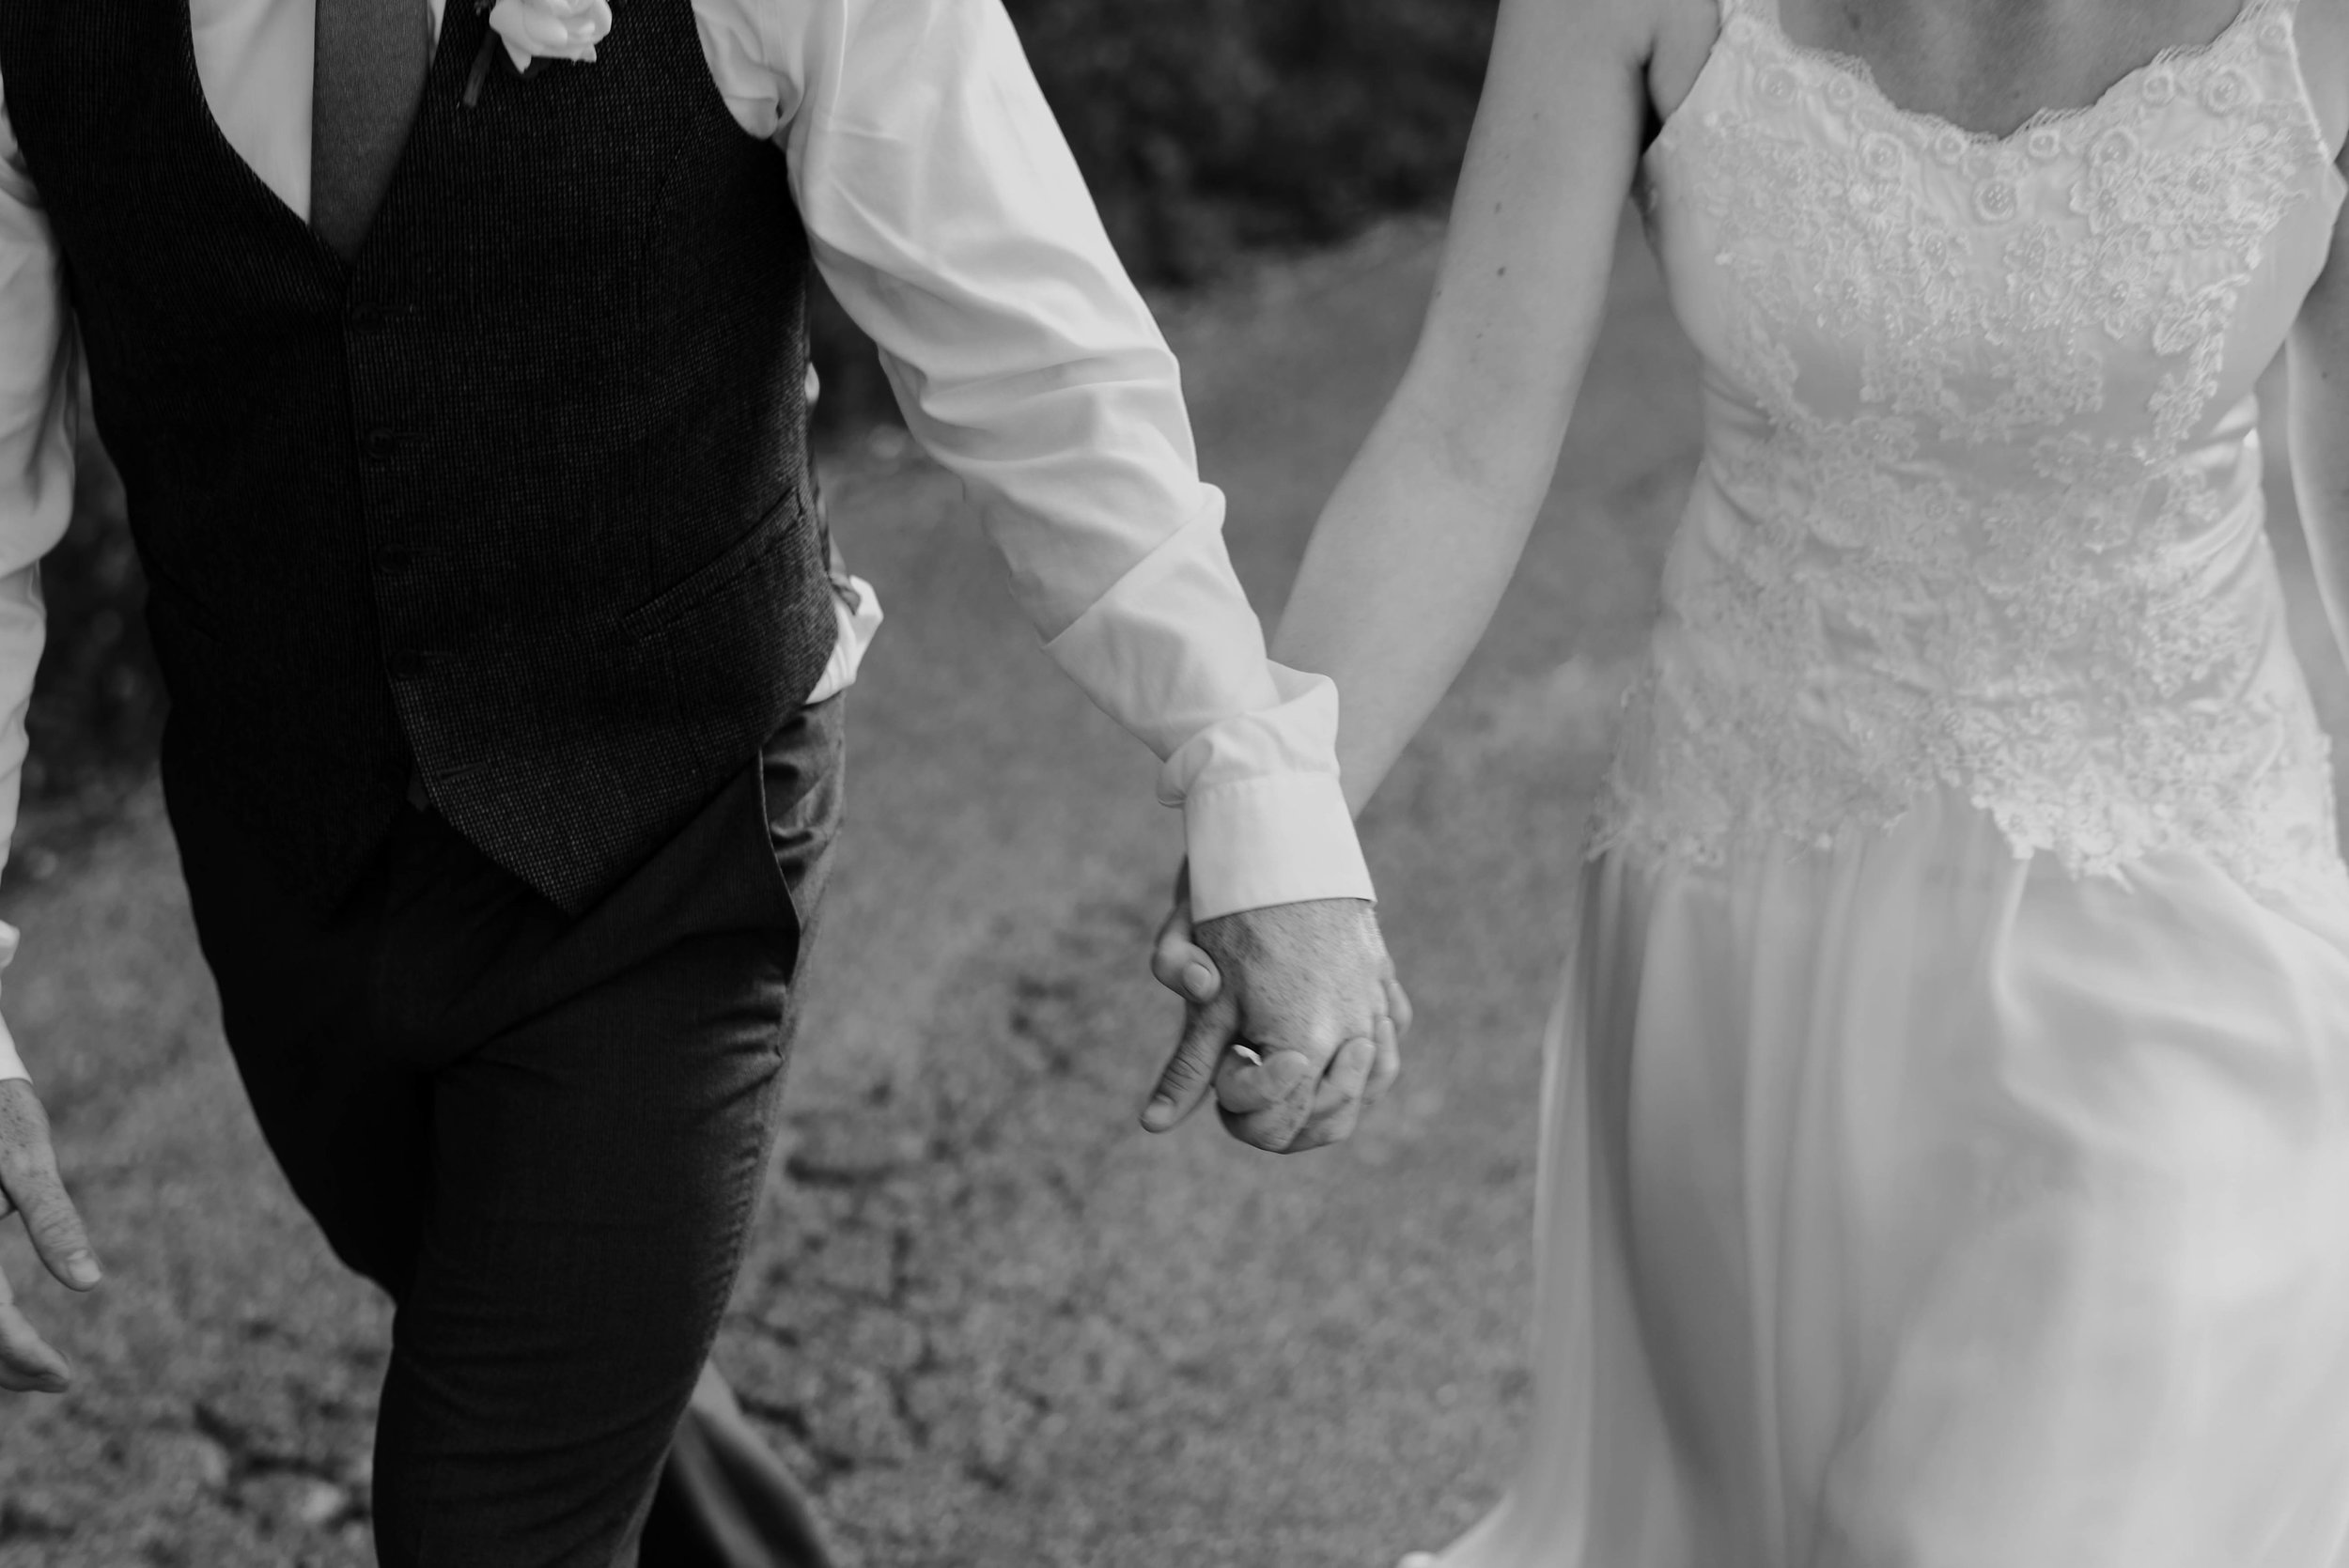 FOR ELOPEMENTS/INTIMATE WEDDINGS - WEEKDAYS ONLYUp to 4 hours of Wedding Day CoveragePhotos delivered via online gallery.Additional hours are $200/per$2000